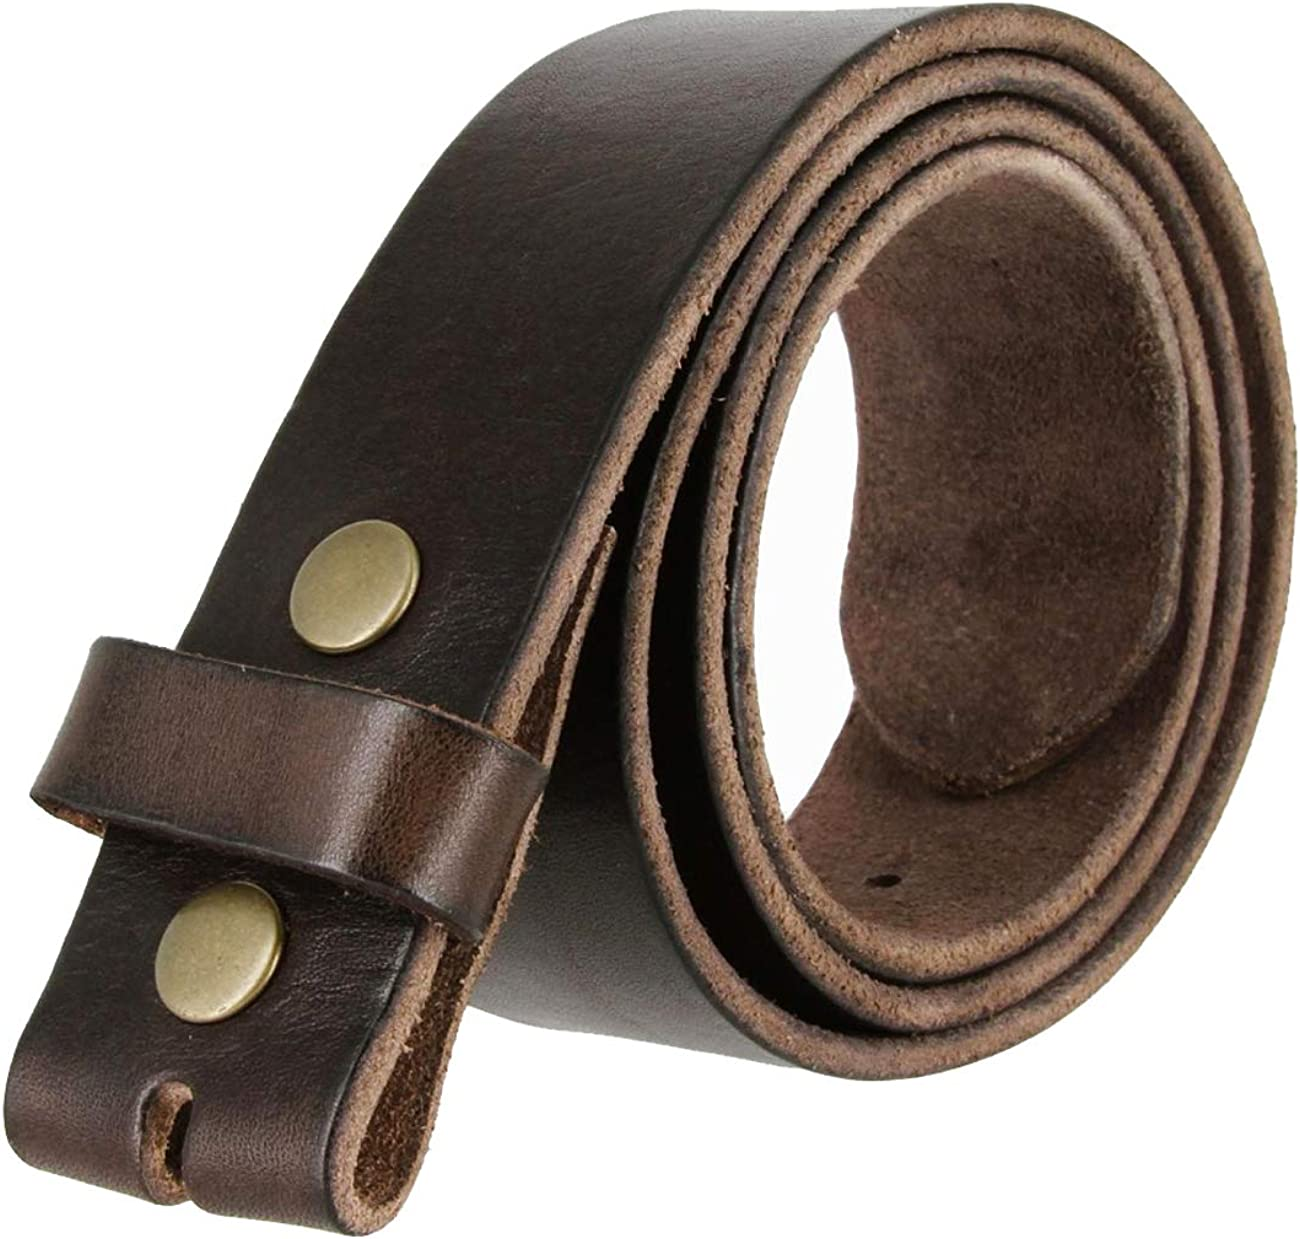 """BS-40 100% Full Grain Leather Replacement Belt Strap with Snaps 1 1/2"""" wide"""